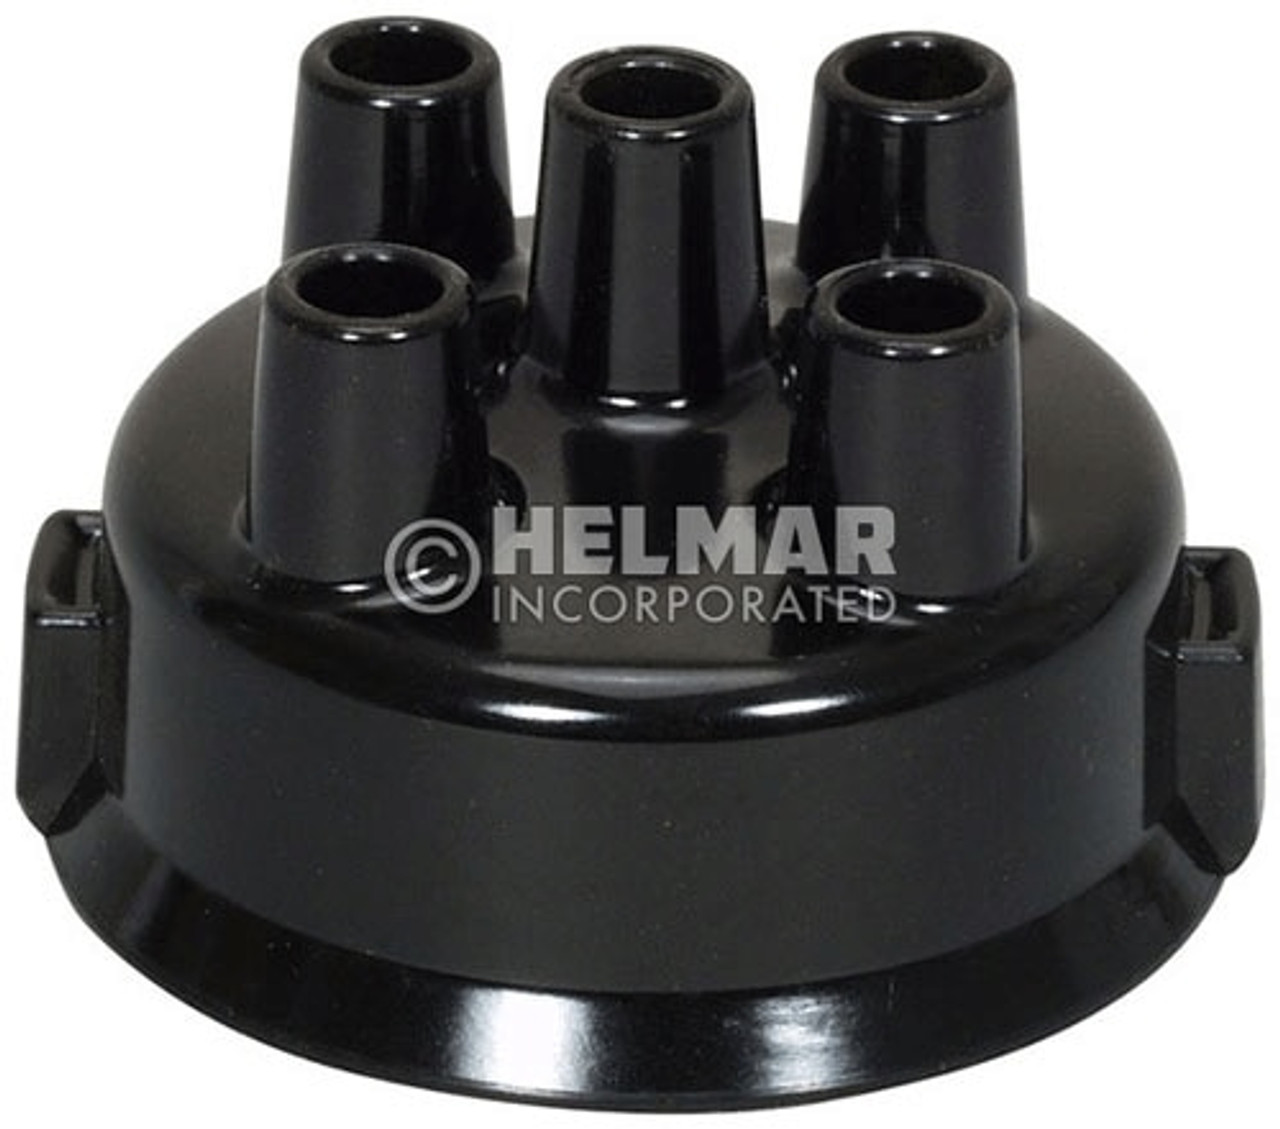 850058 Clark Distributor Cap for Continental F163 Engines, Type DC-24